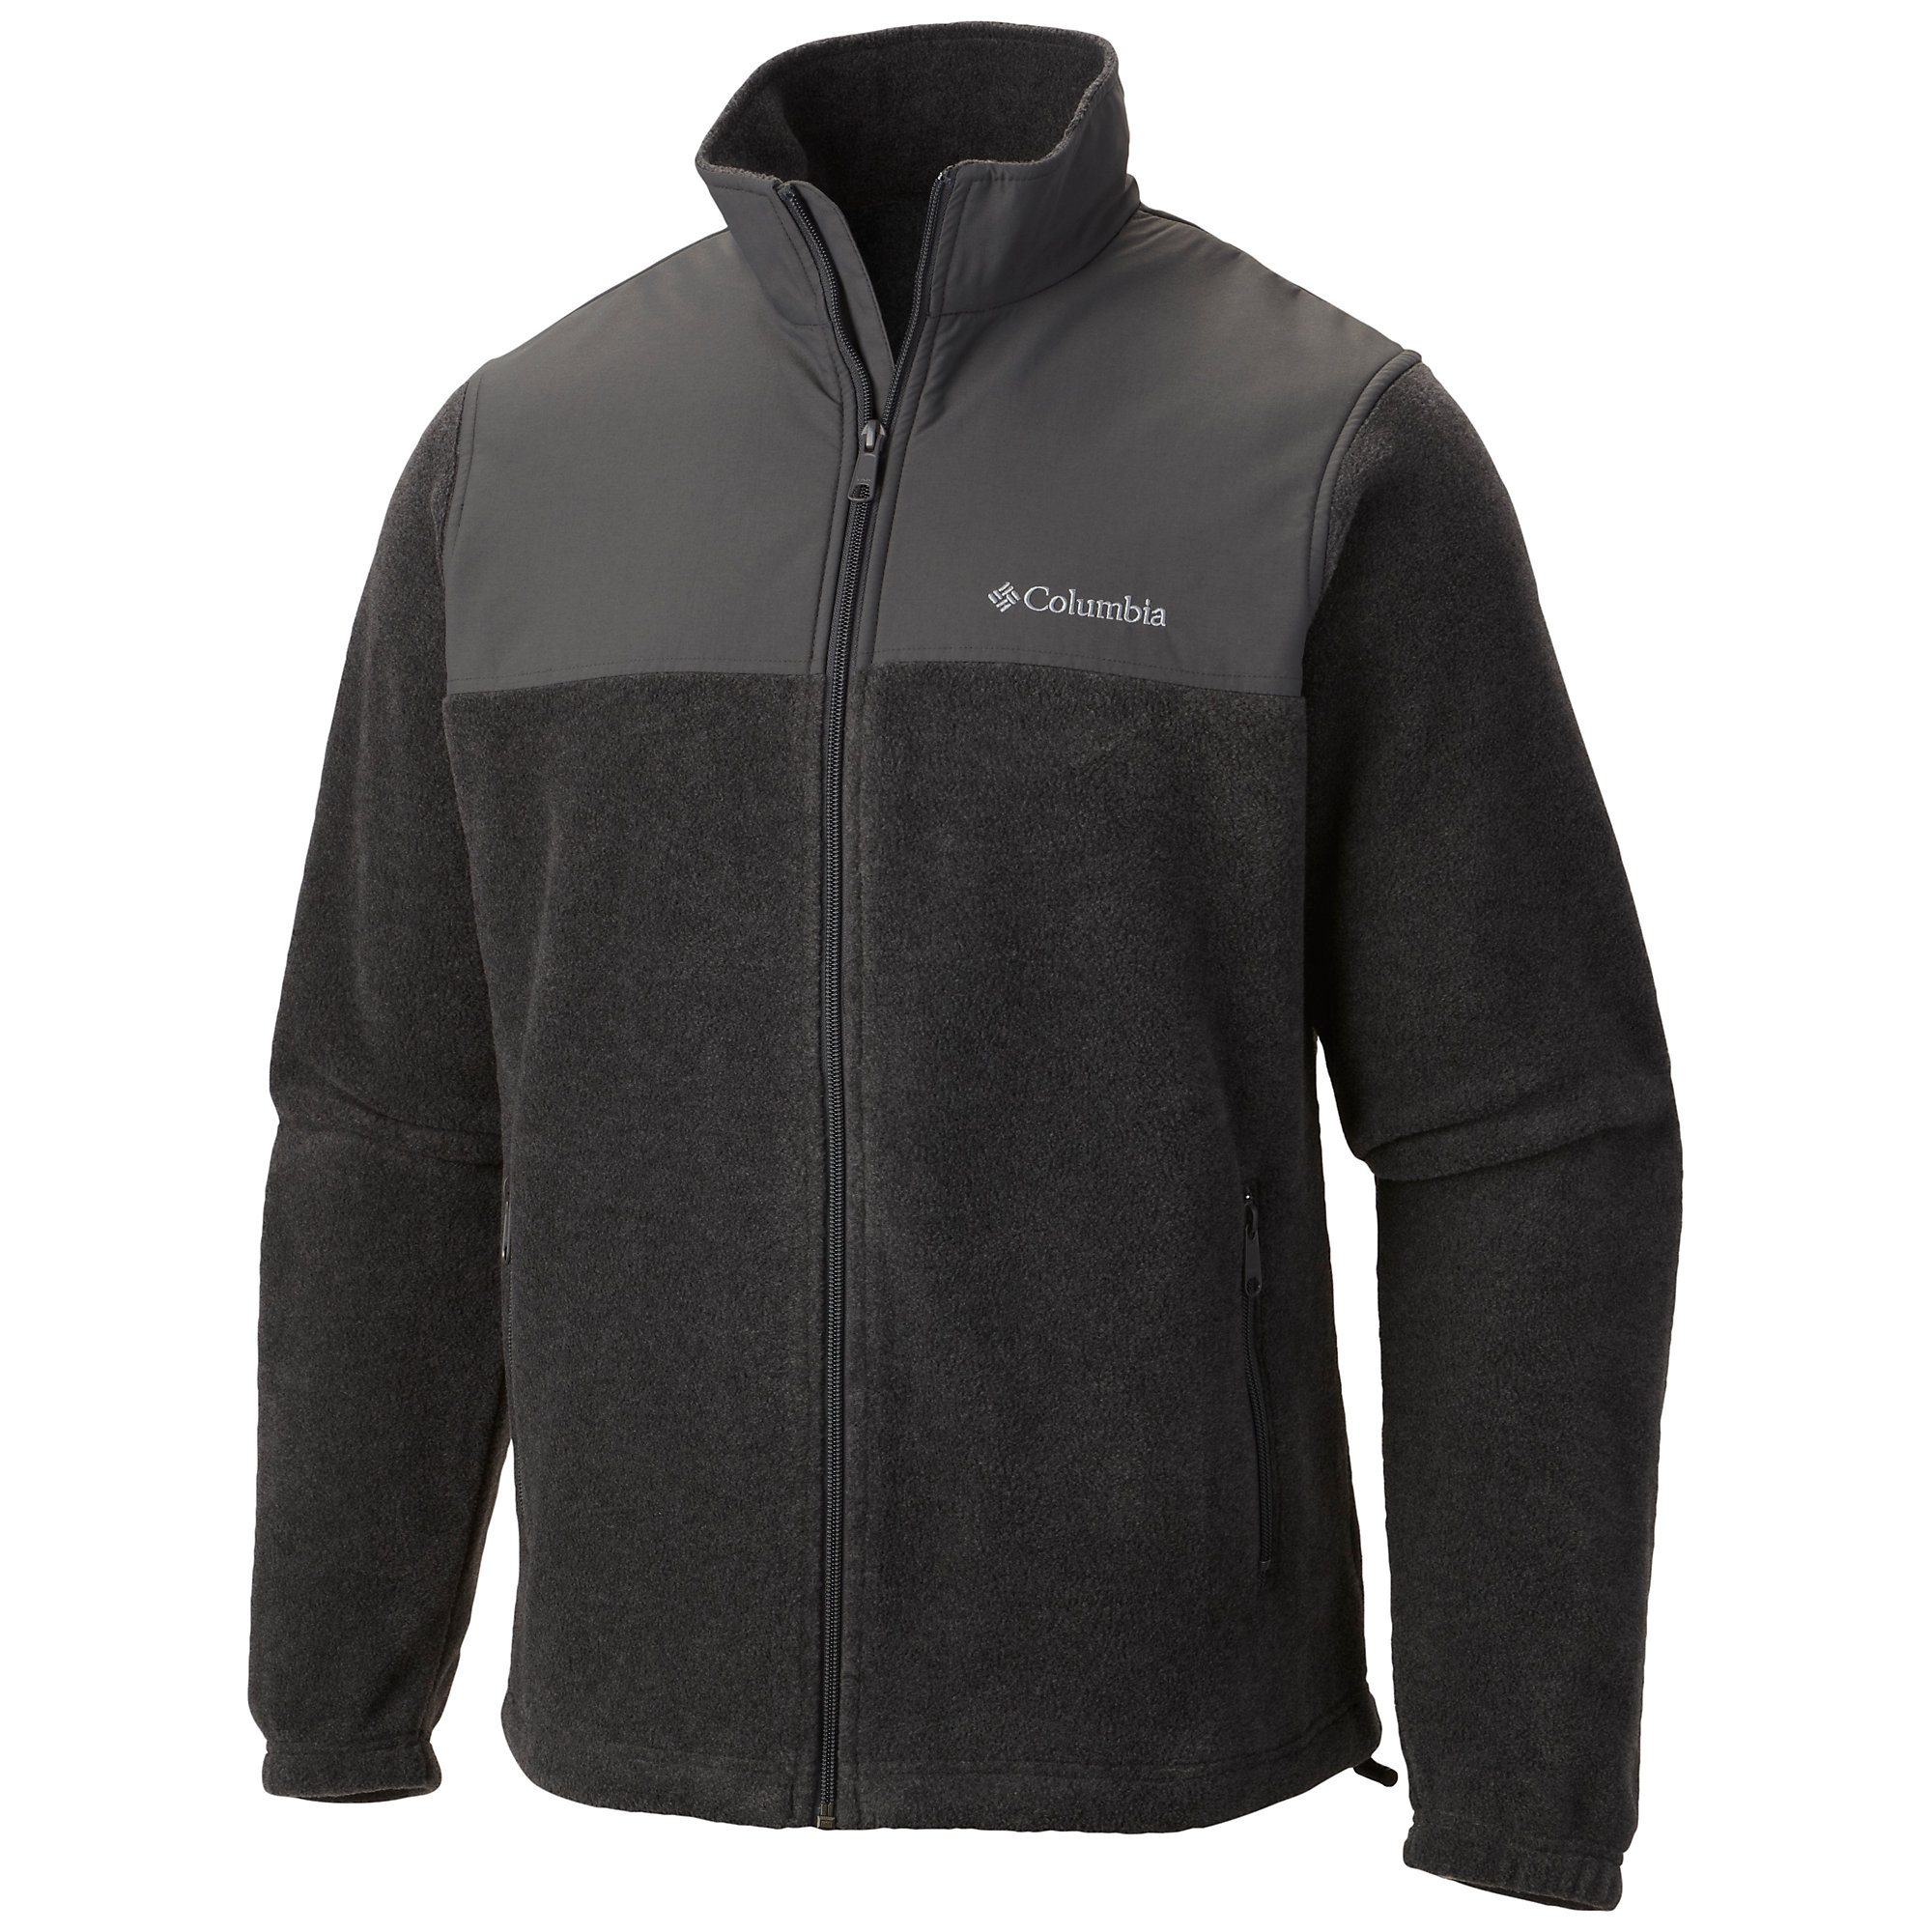 Columbia Steens Mountain Tech Full Zip